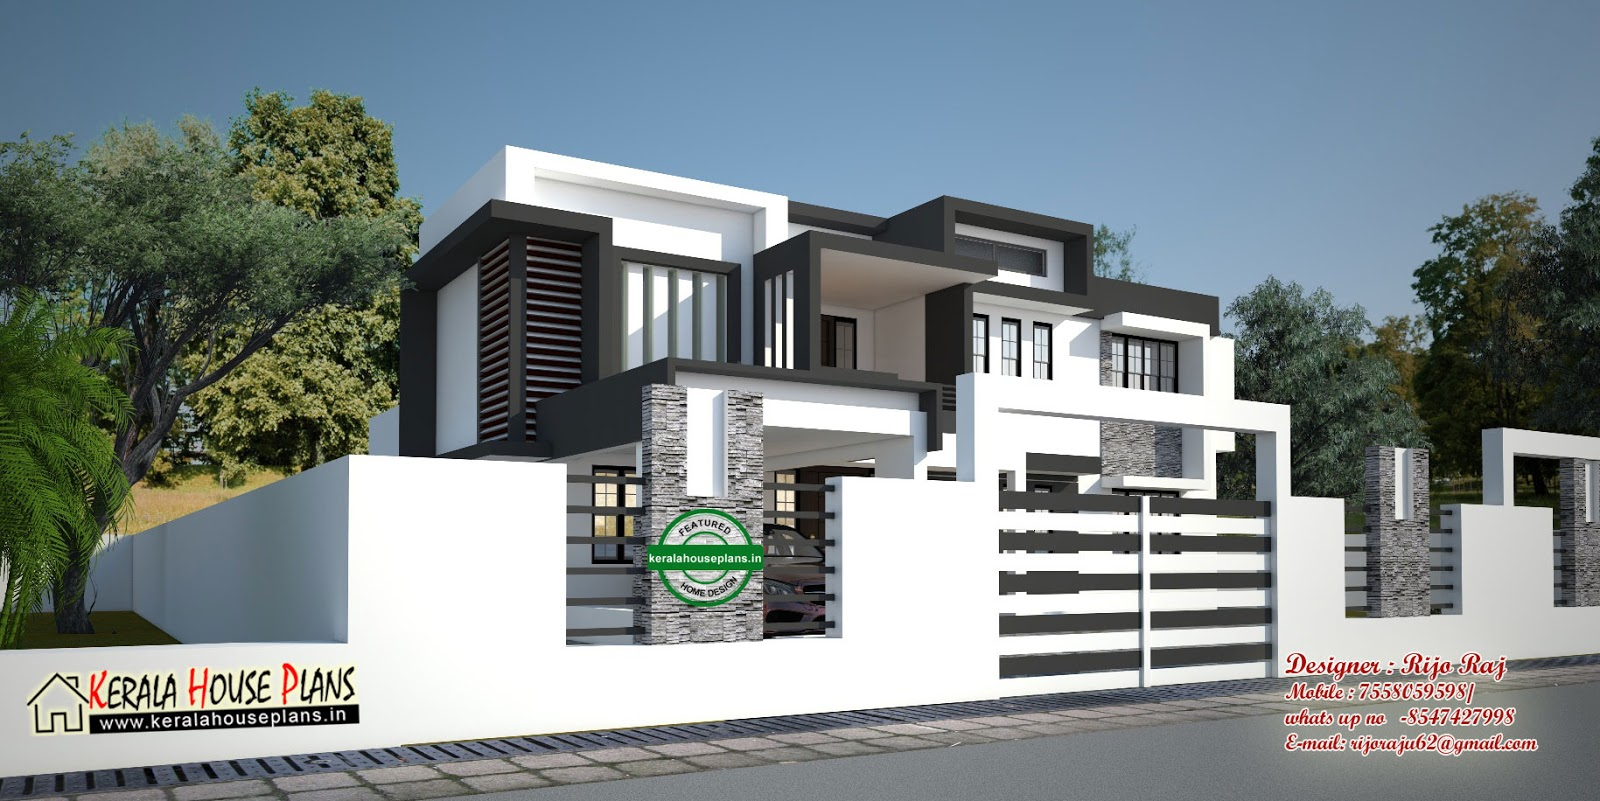 Kerala house plans designs floor plans and elevation for Modern kerala style house plans with photos